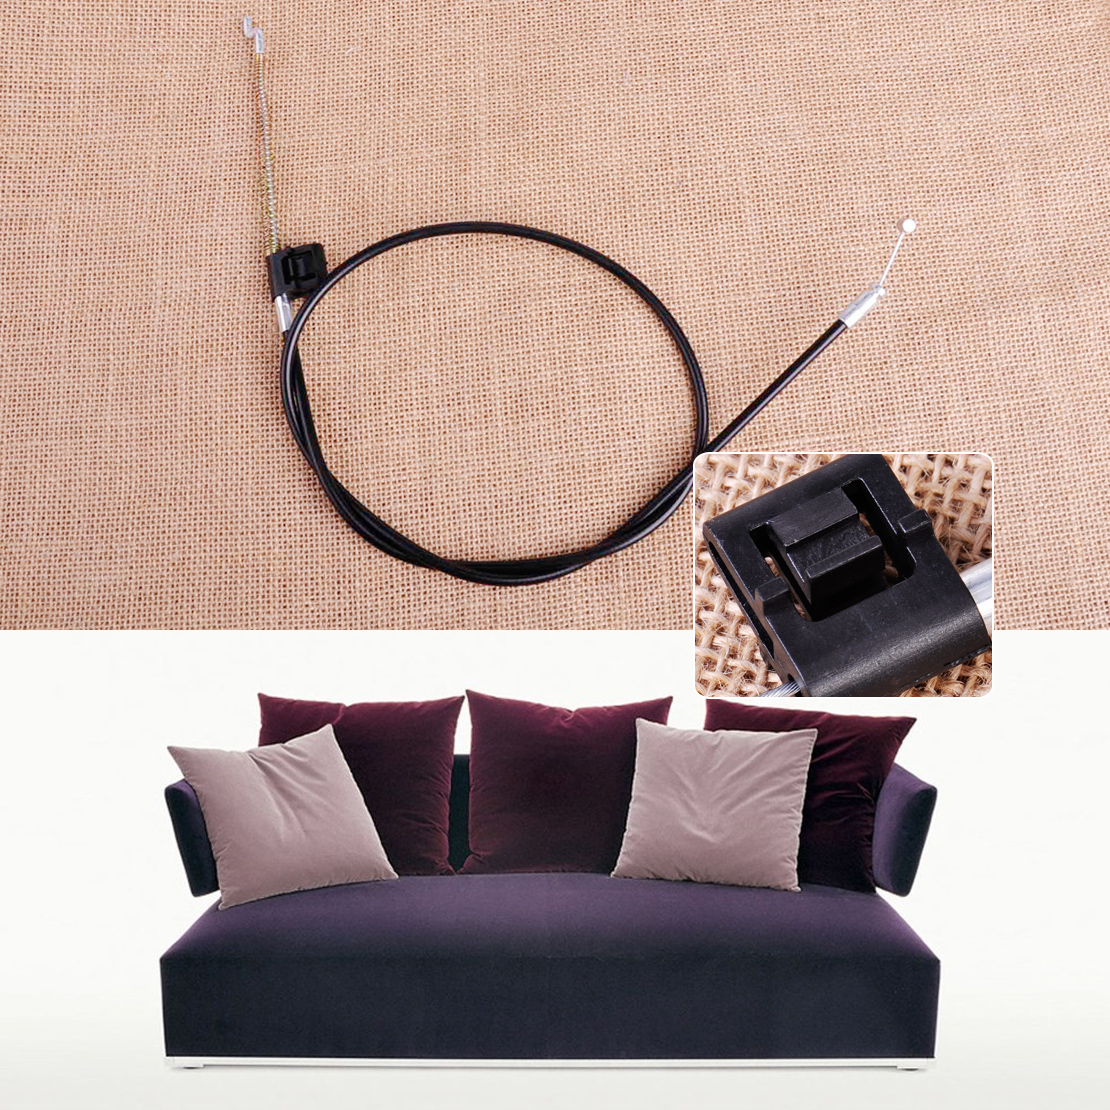 New Metal Recliner Chair Sofa Handle Cable Couch Release Lever Replacement Cable Accessibility